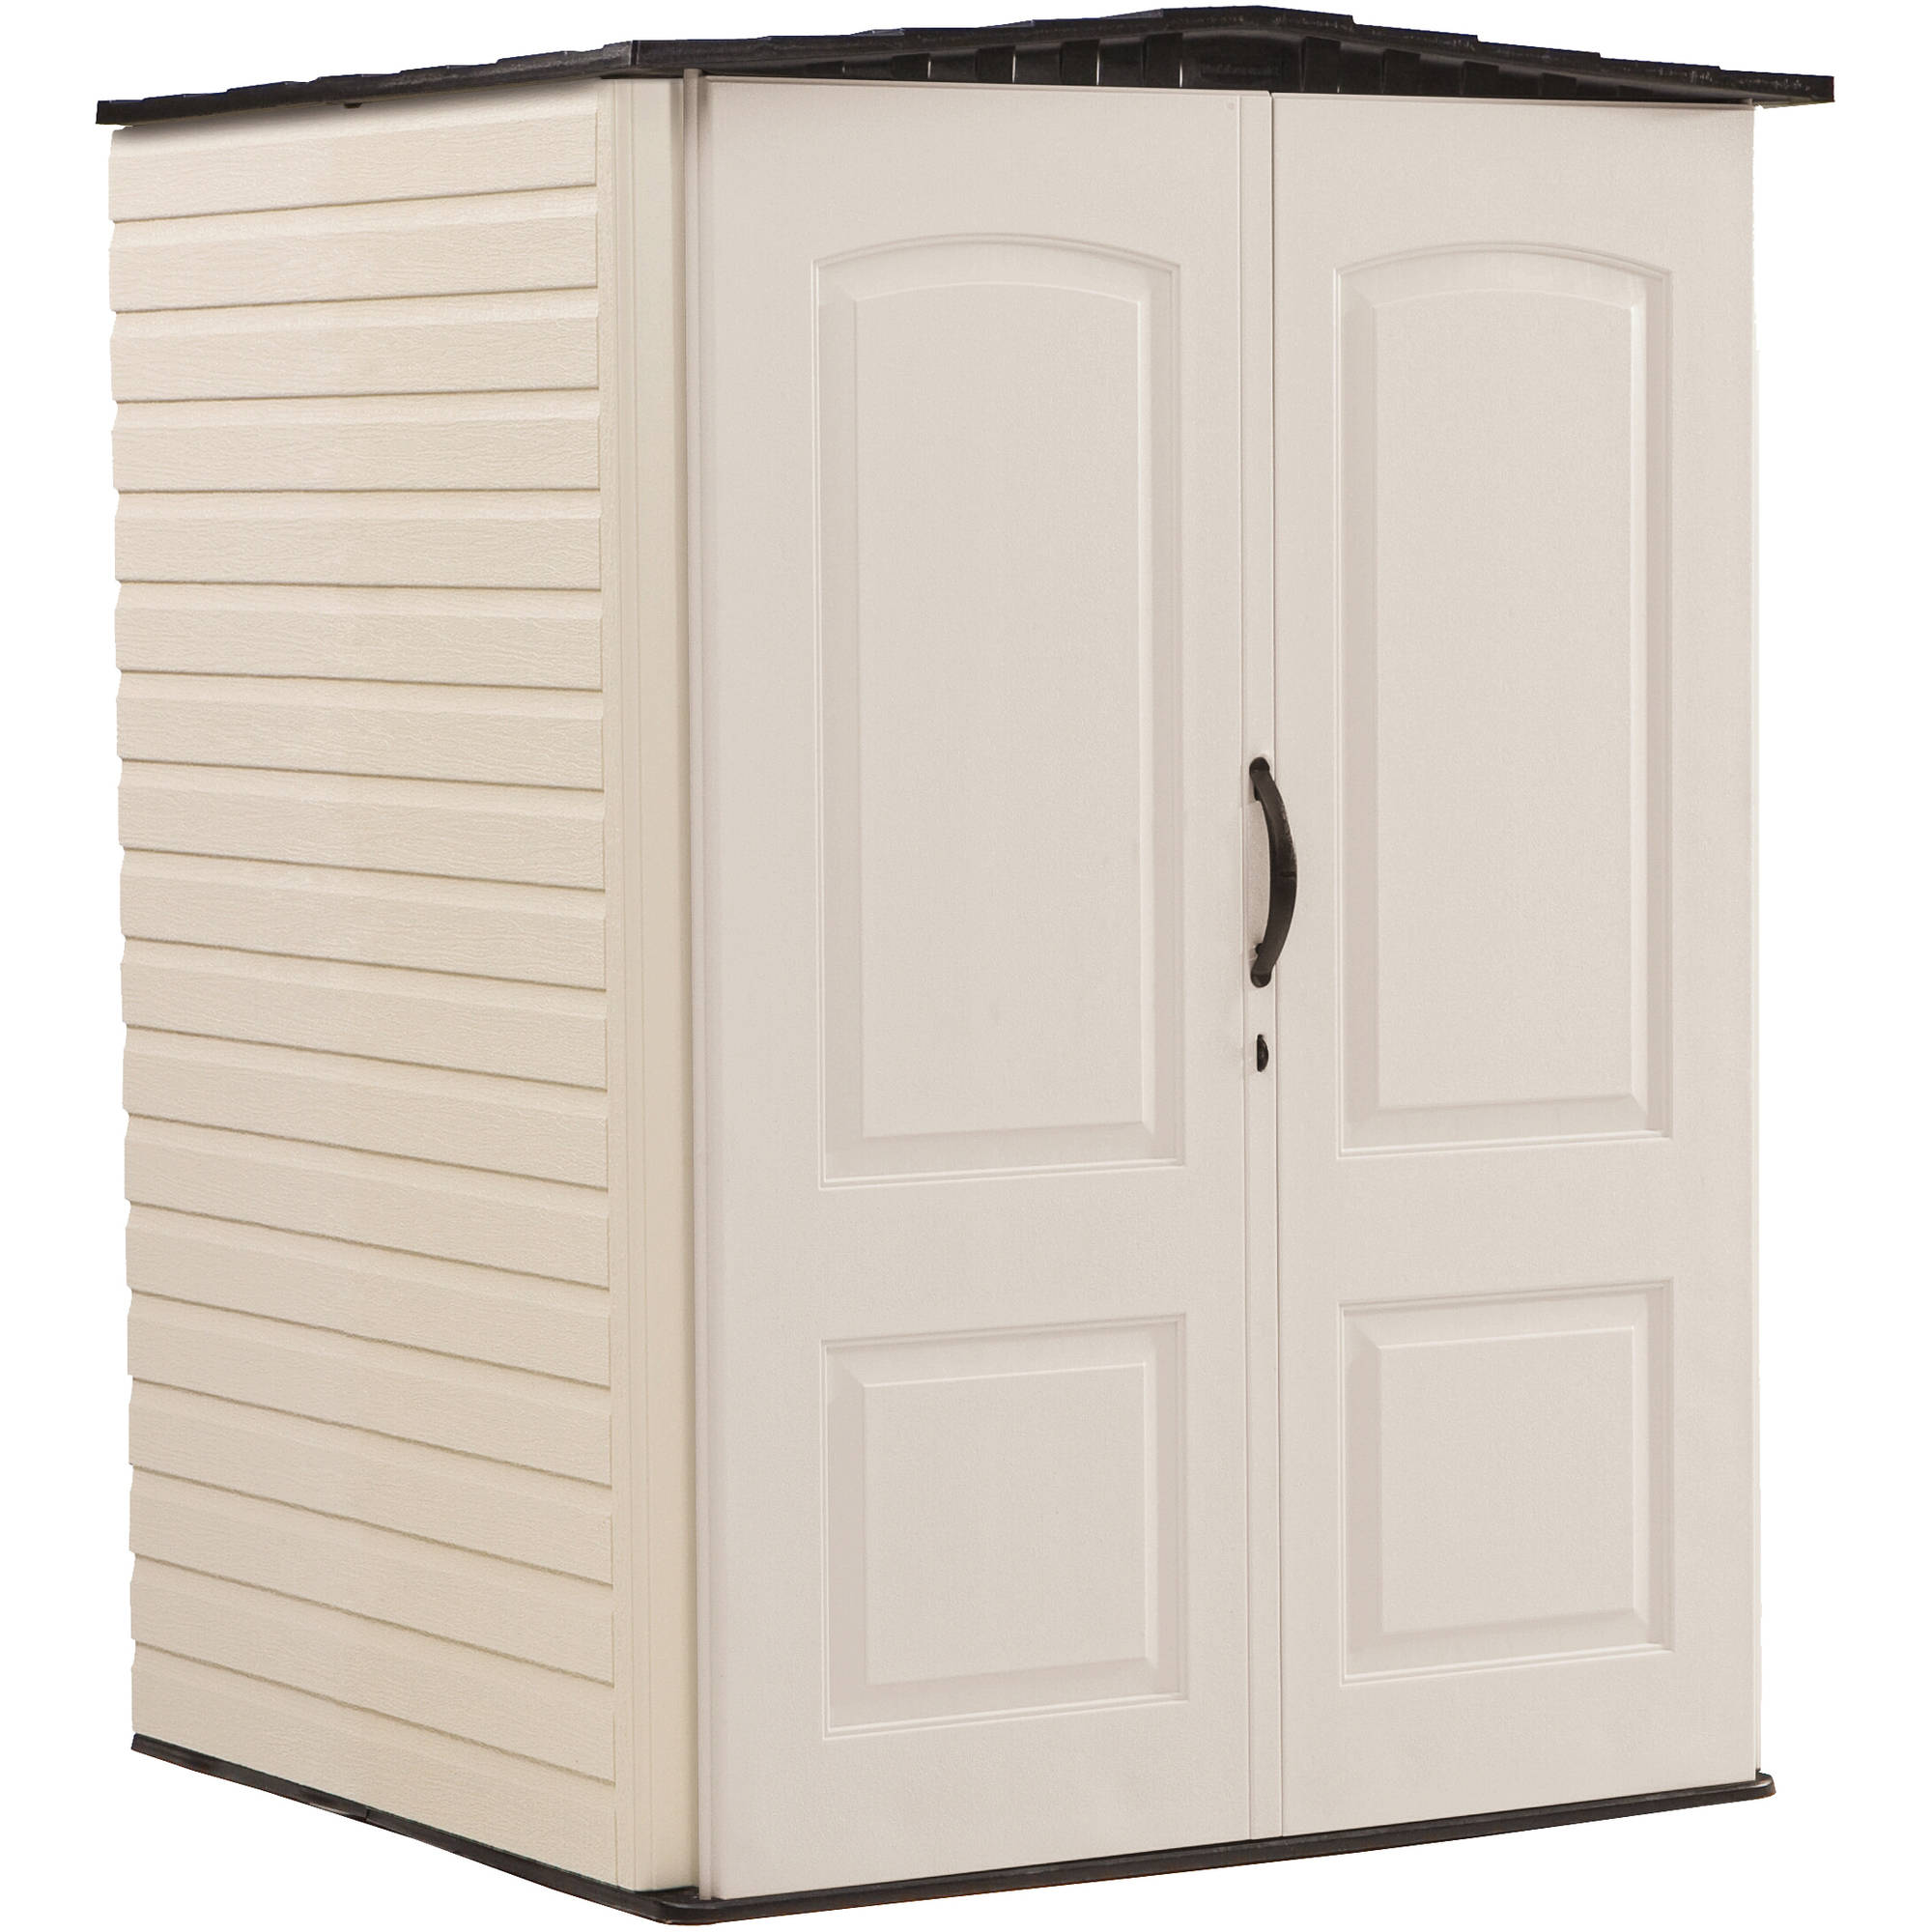 feet resource sheds storage itm cubic low rubbermaid slide shed profile outdoor lid